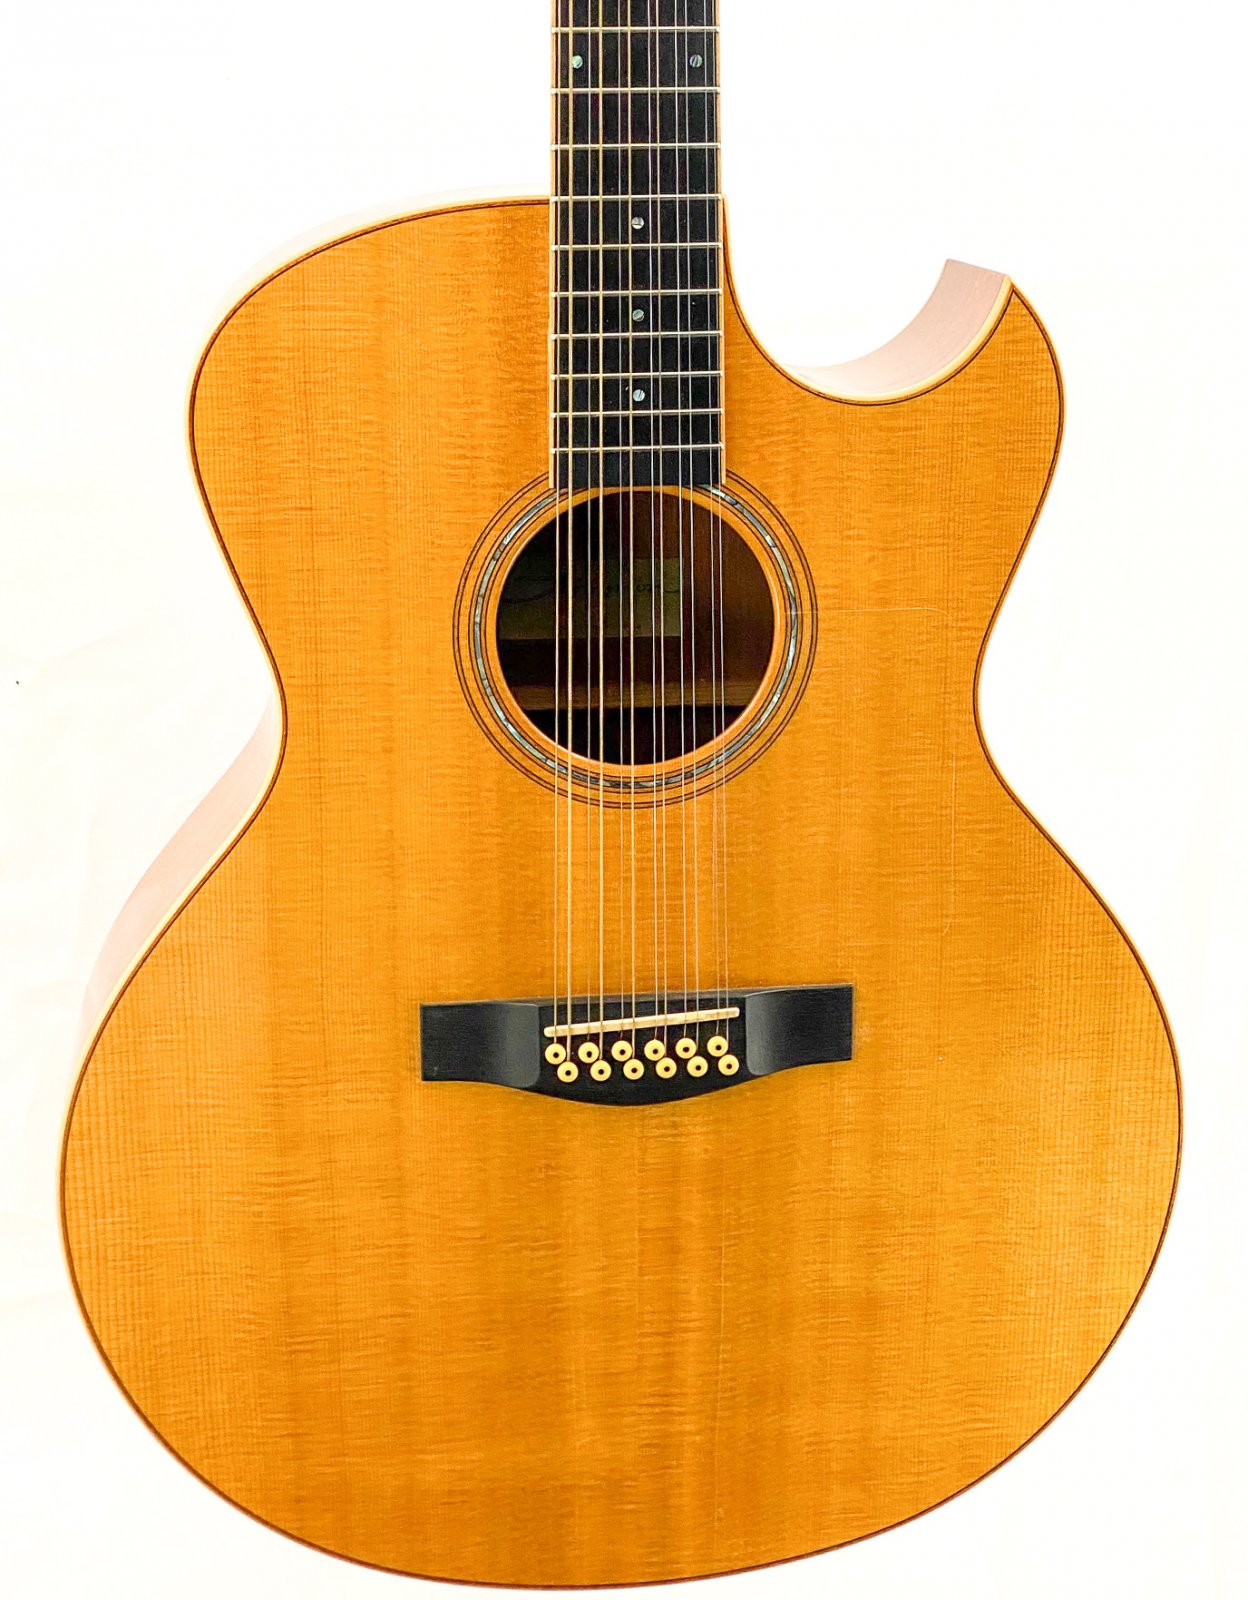 1998 Thompson T3M-C-12 Deluxe 12-string acoustic